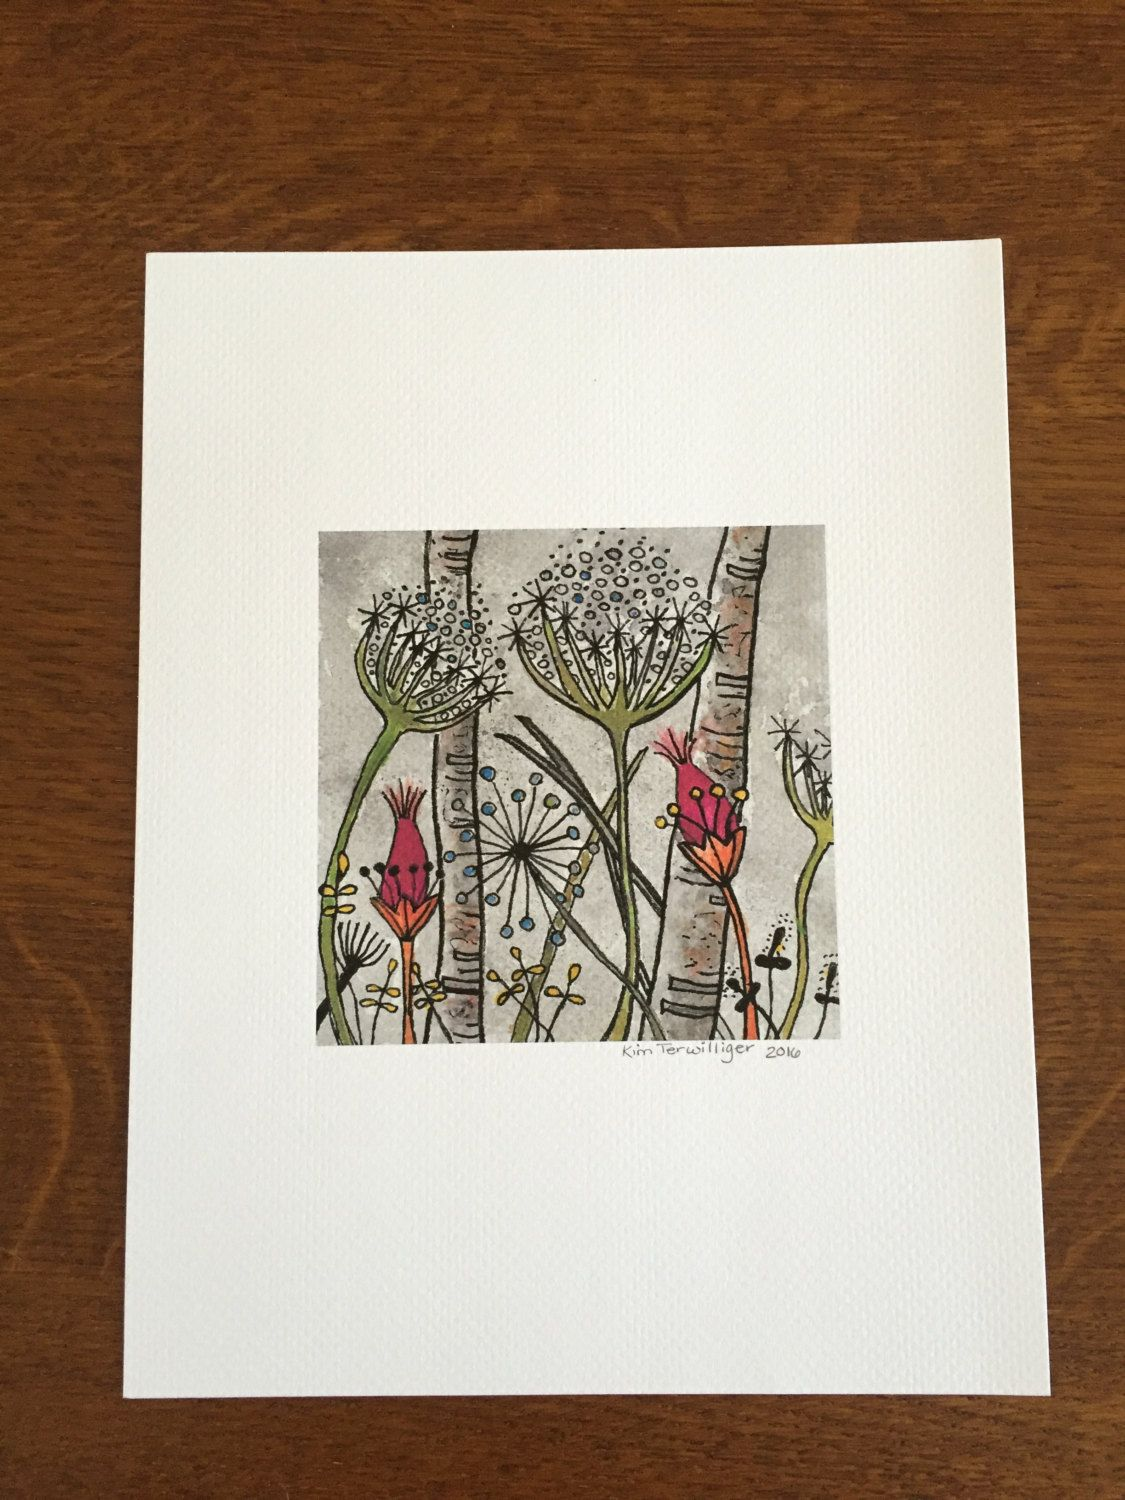 Whimsical Watercolor and Pen Print Reproduced from Original Art by JustKimDesigns on Etsy